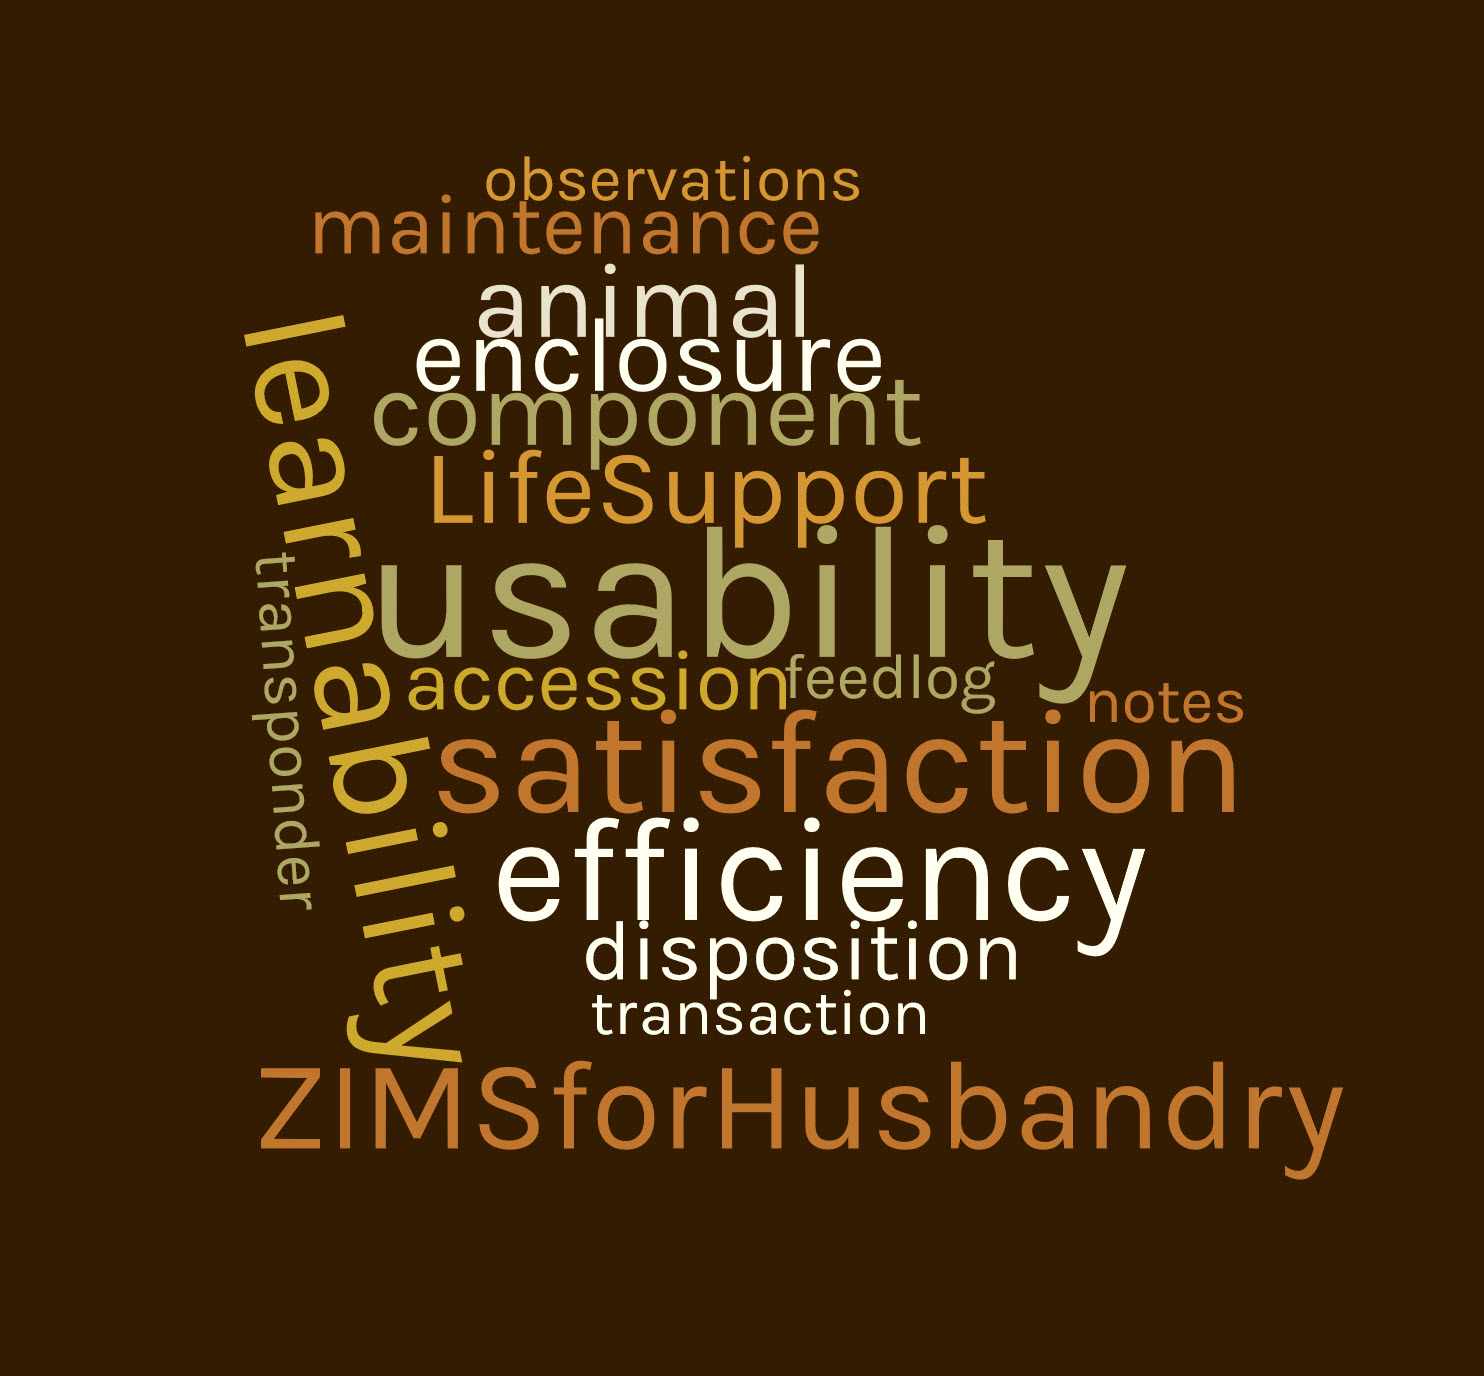 ZIMS For Husbandry Usability Survey